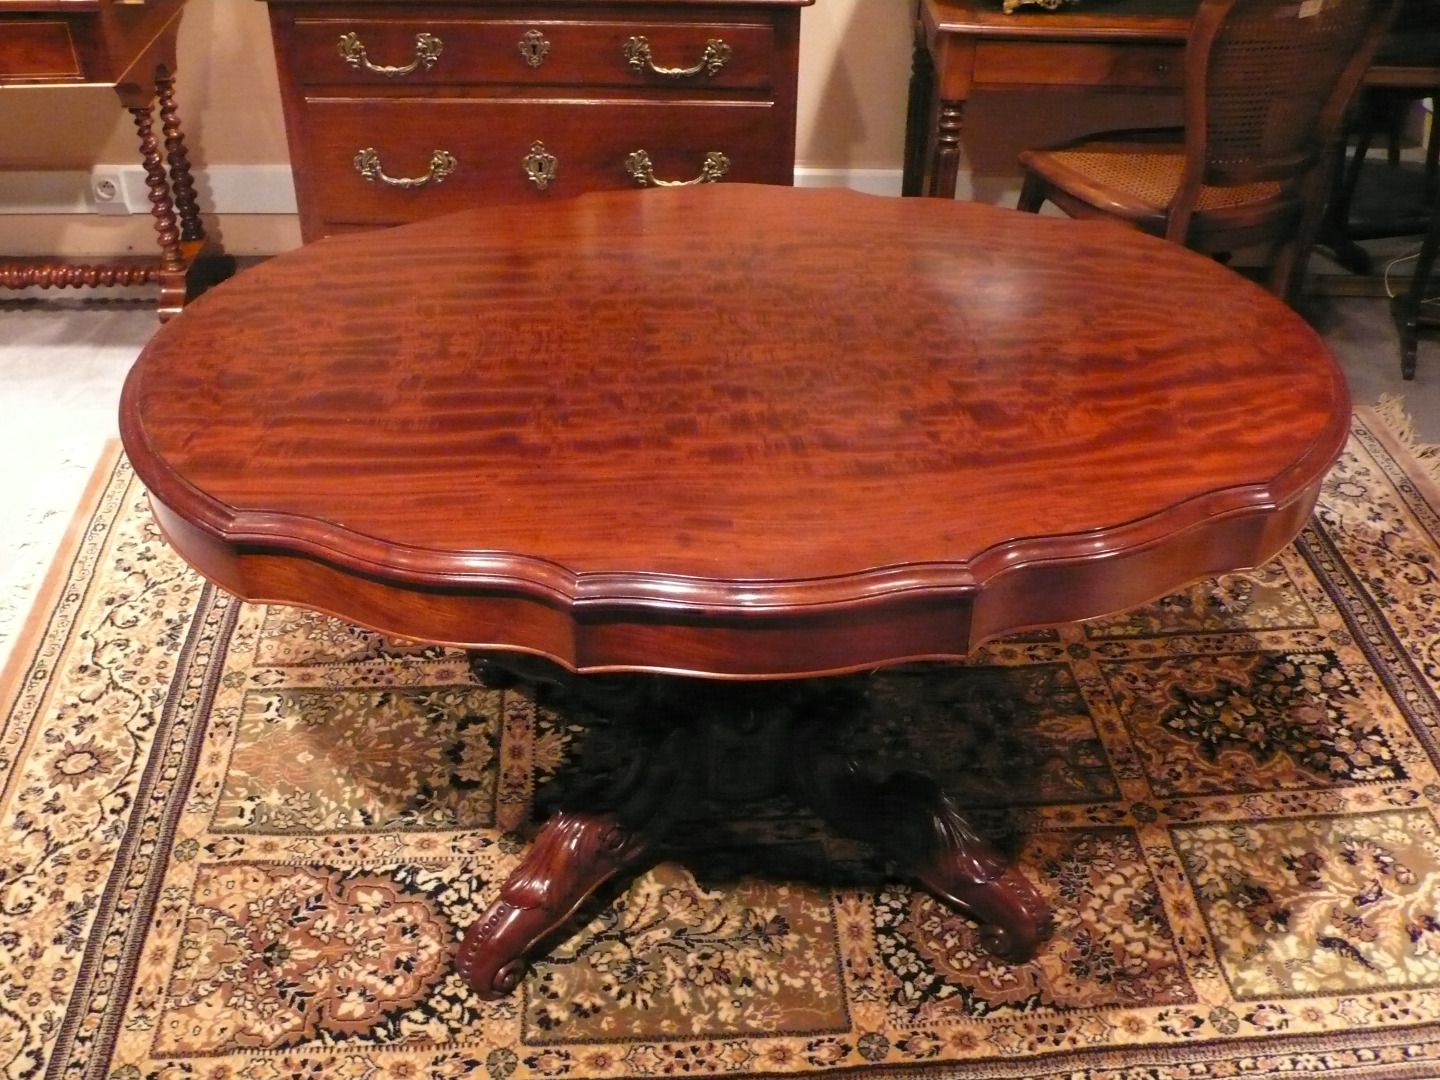 NAPOLEON III PERIOD PEDESTAL TABLE